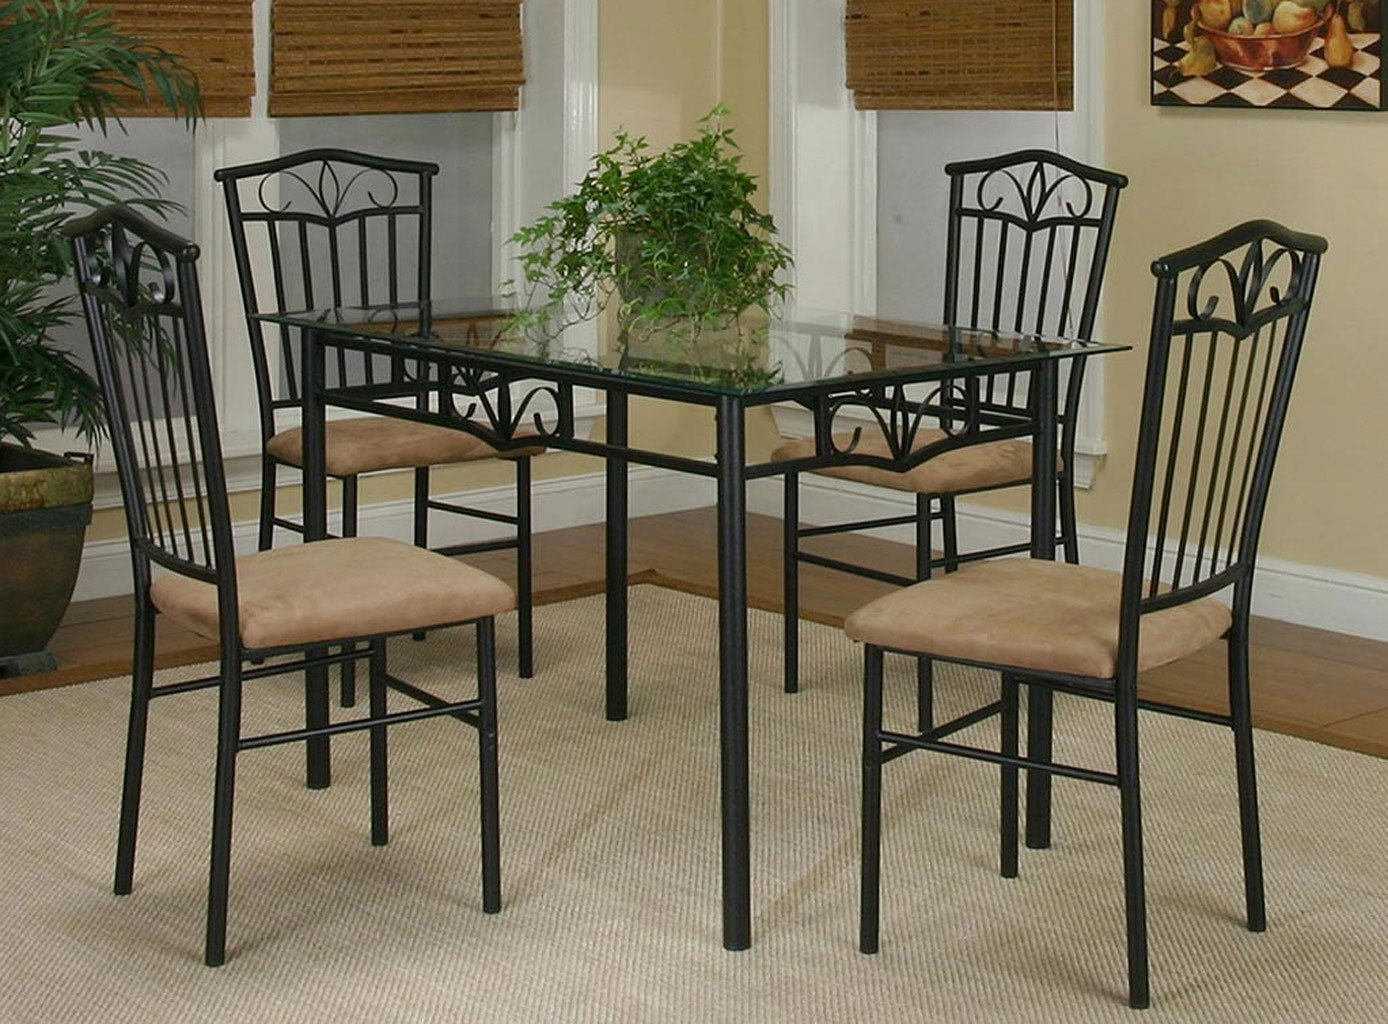 Laurel 5 piece dining room set casual dining sets for Naaptol kitchen set 70 pieces